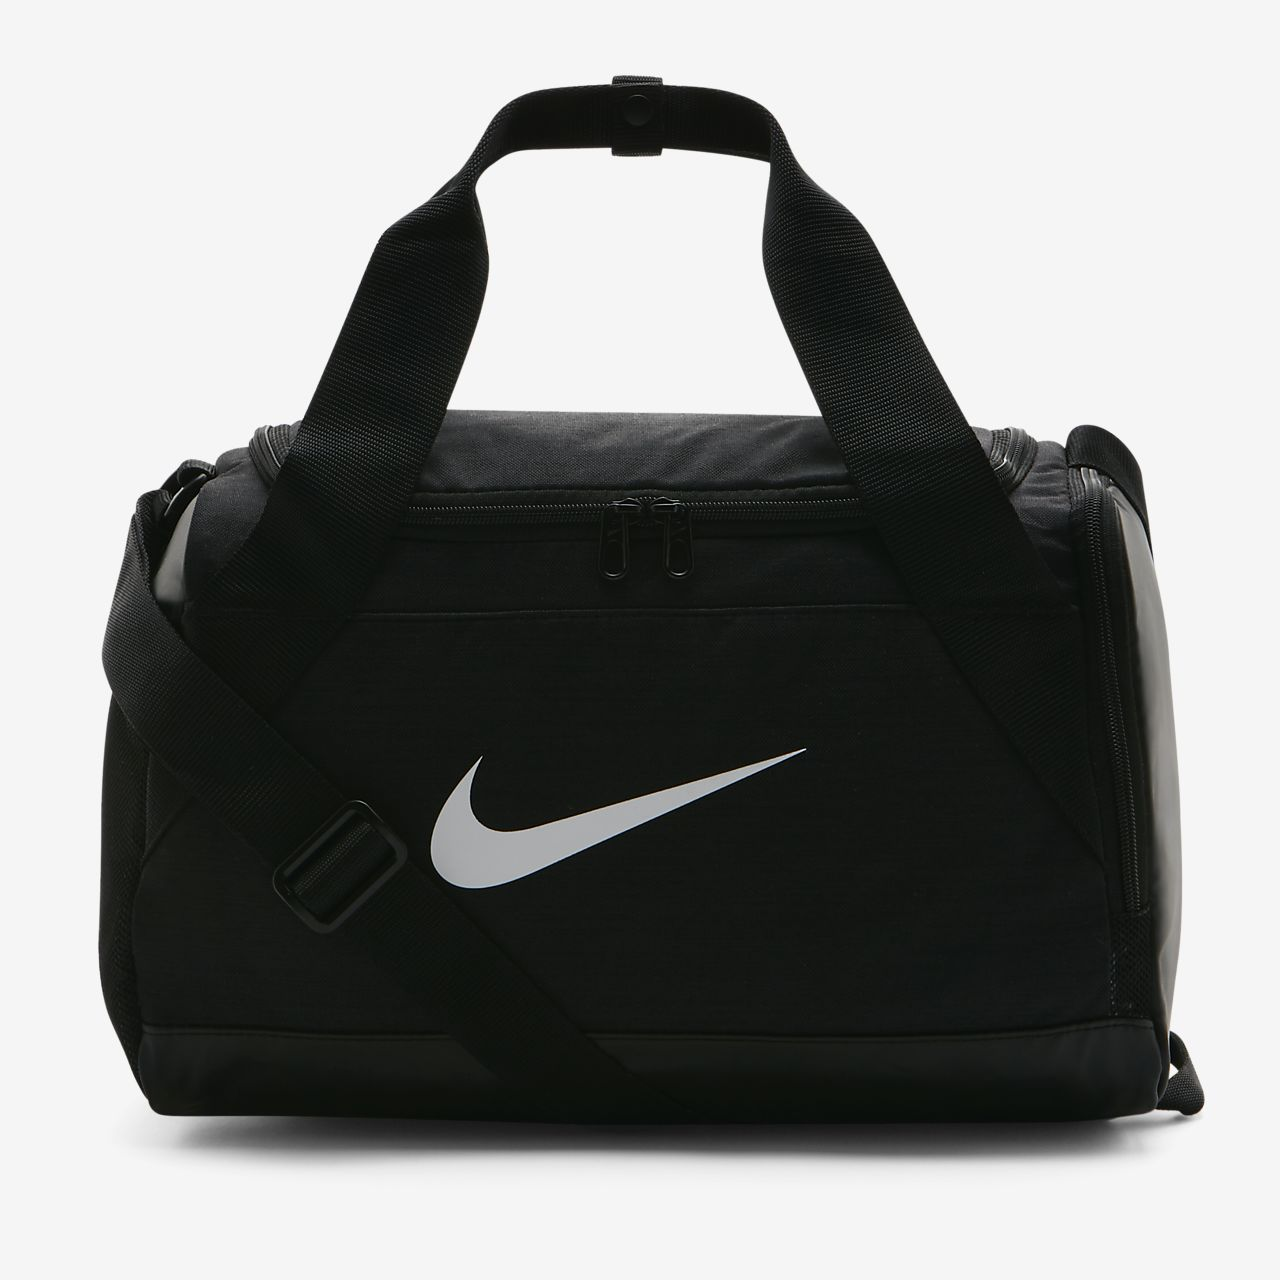 6d8be5def973f0 Nike Brasilia (Extra Small) Training Duffel Bag. Nike.com LU